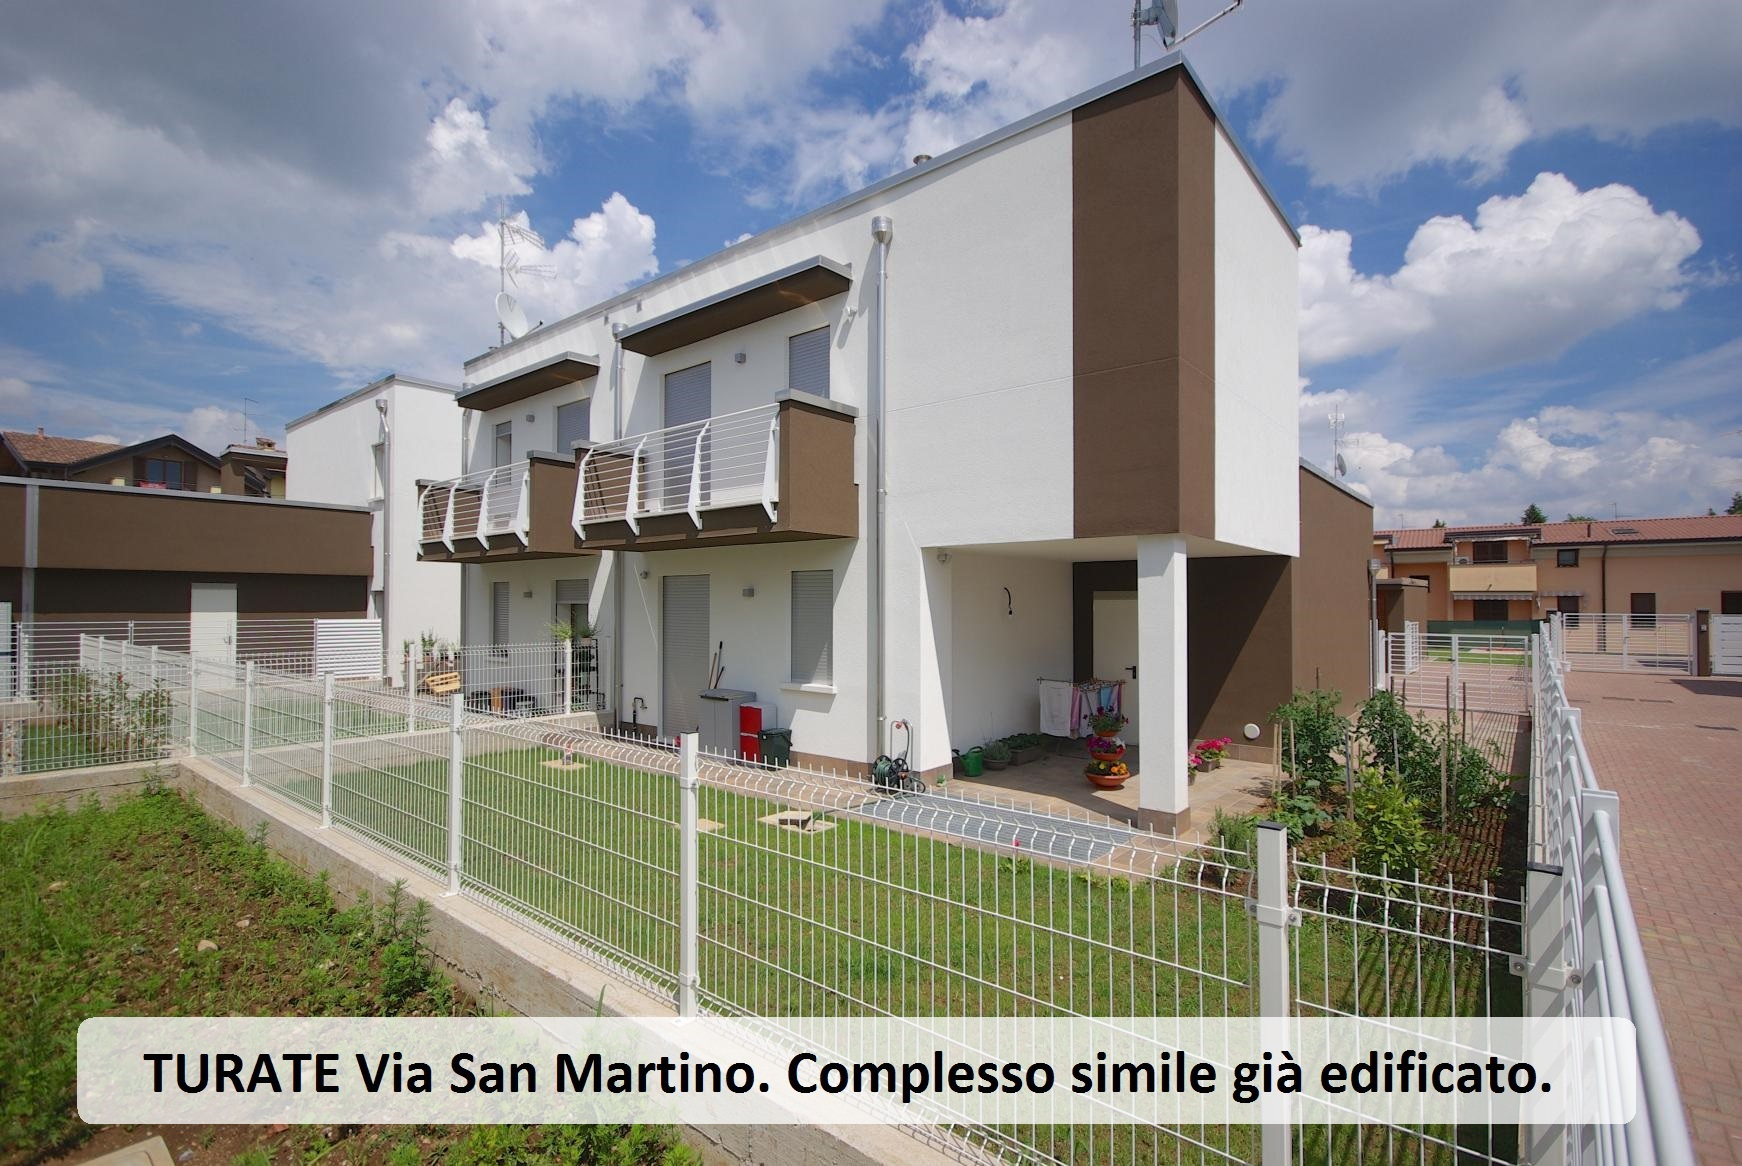 cantiere simile a Turate